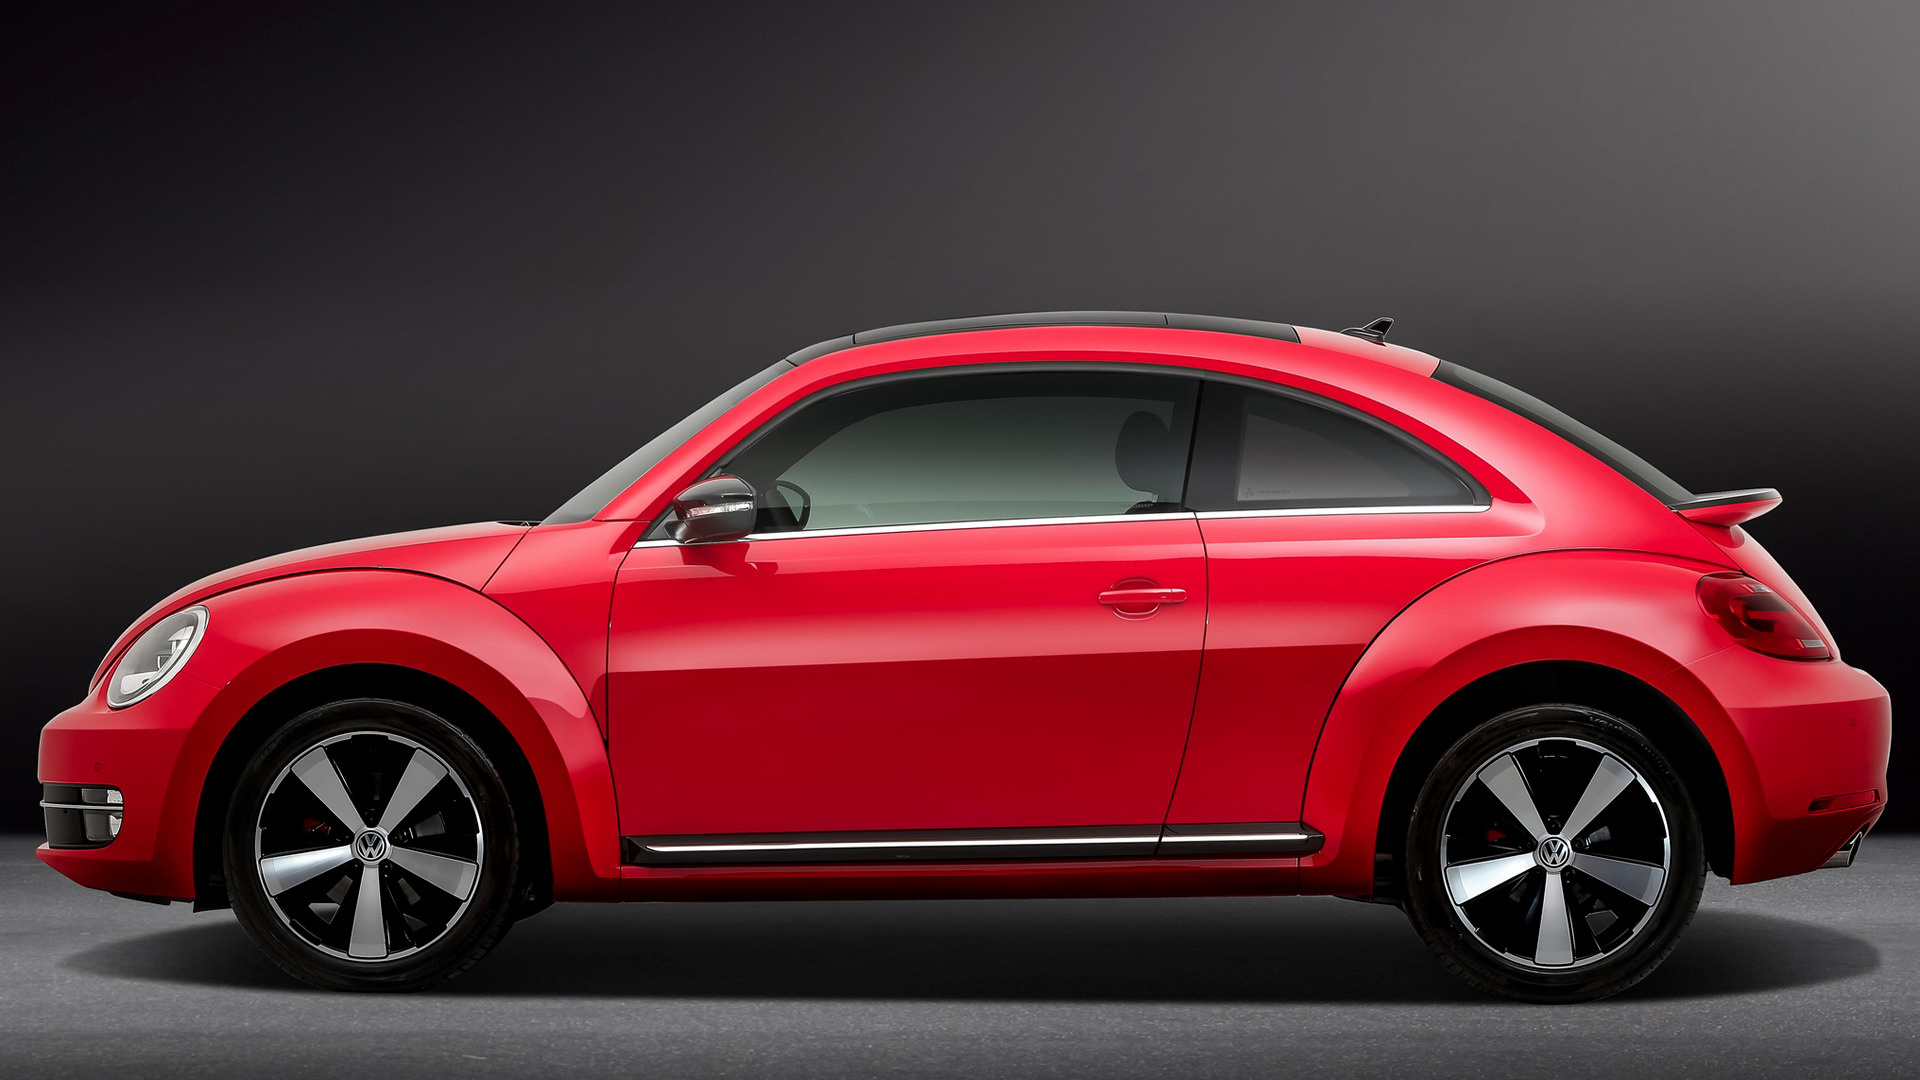 2012 Volkswagen Fusca   Wallpapers and HD Images Car Pixel 1920x1080